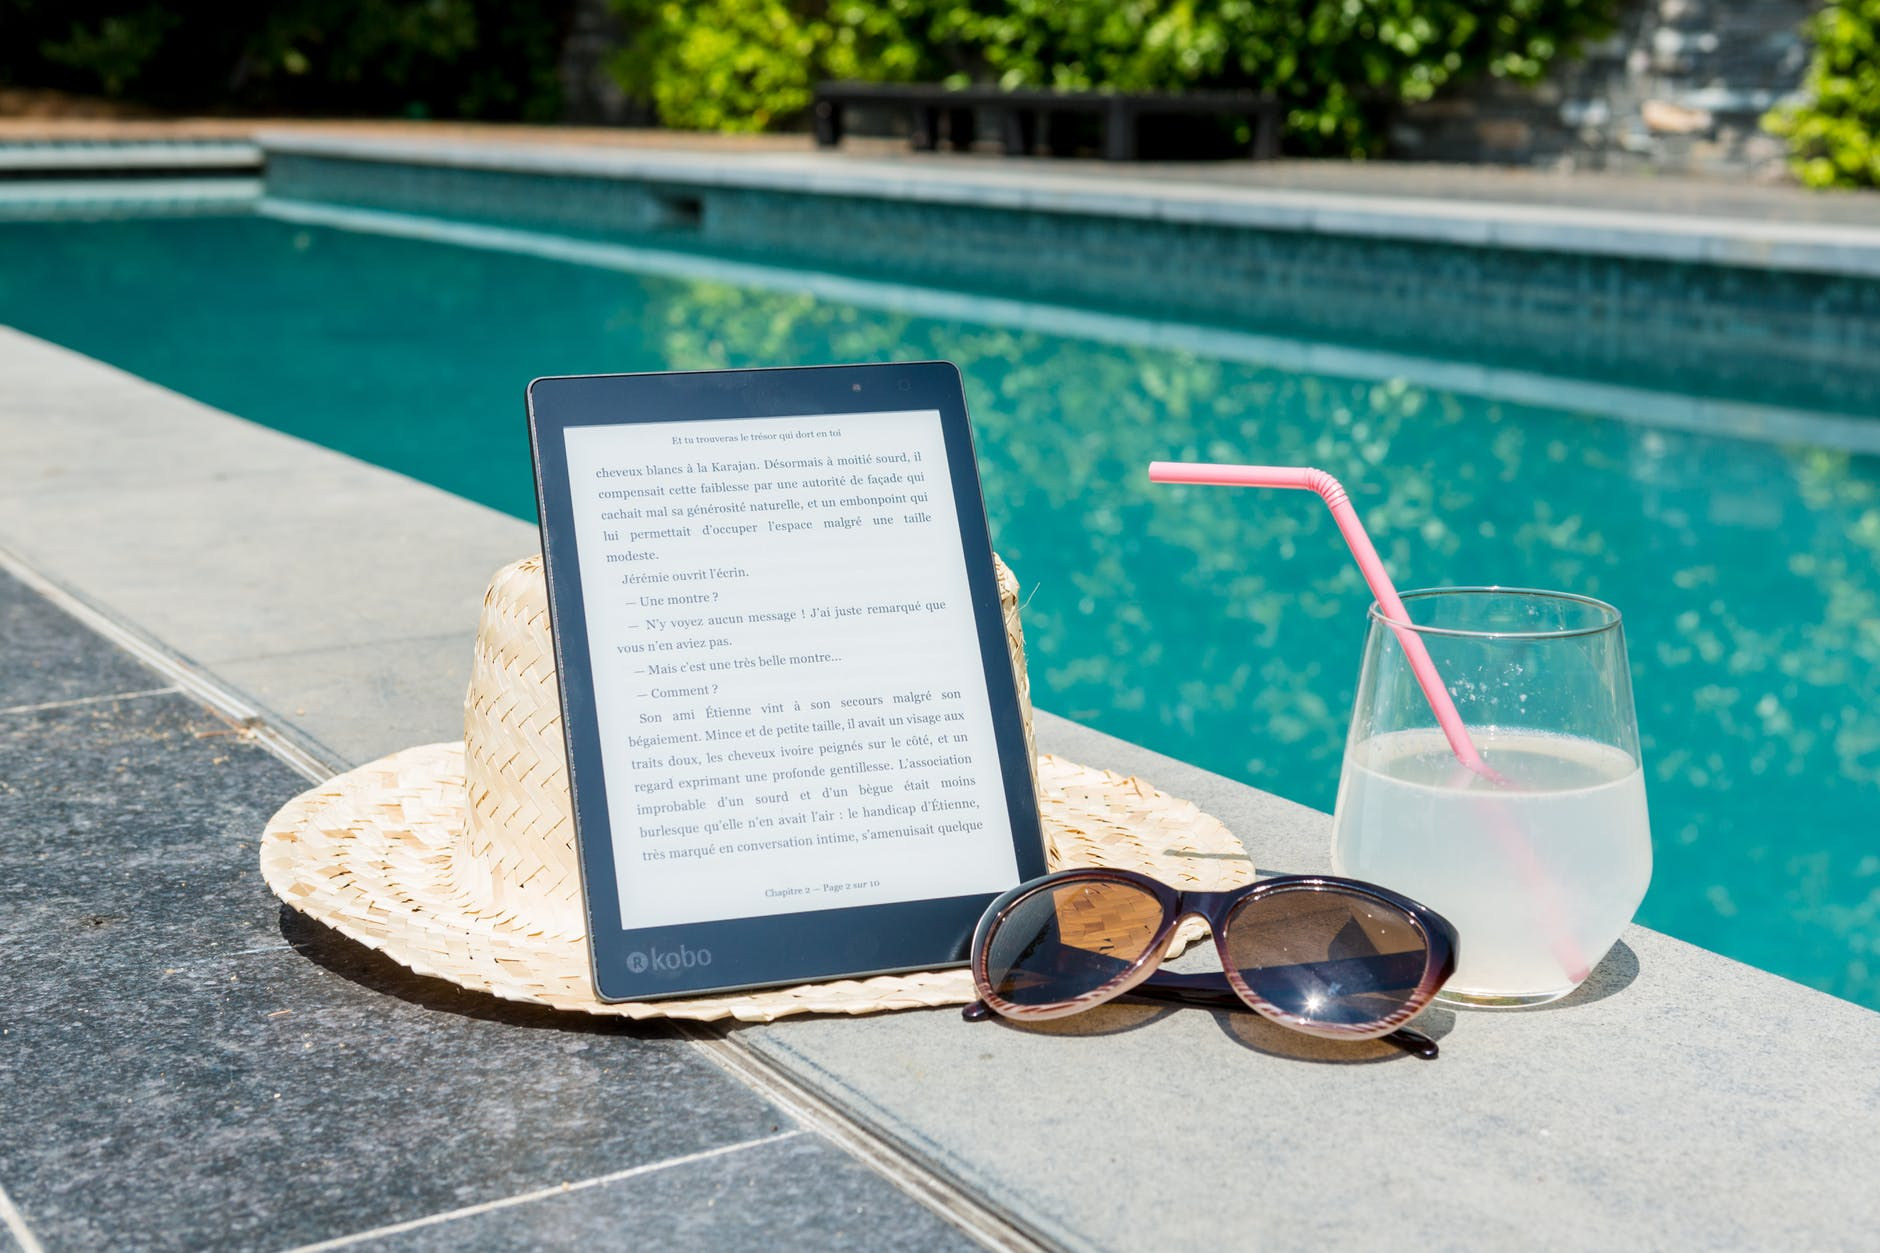 A picture by the pool with as kindle on a straw hat, with sunglasses at the side and a clear drink with a pink straw in it.